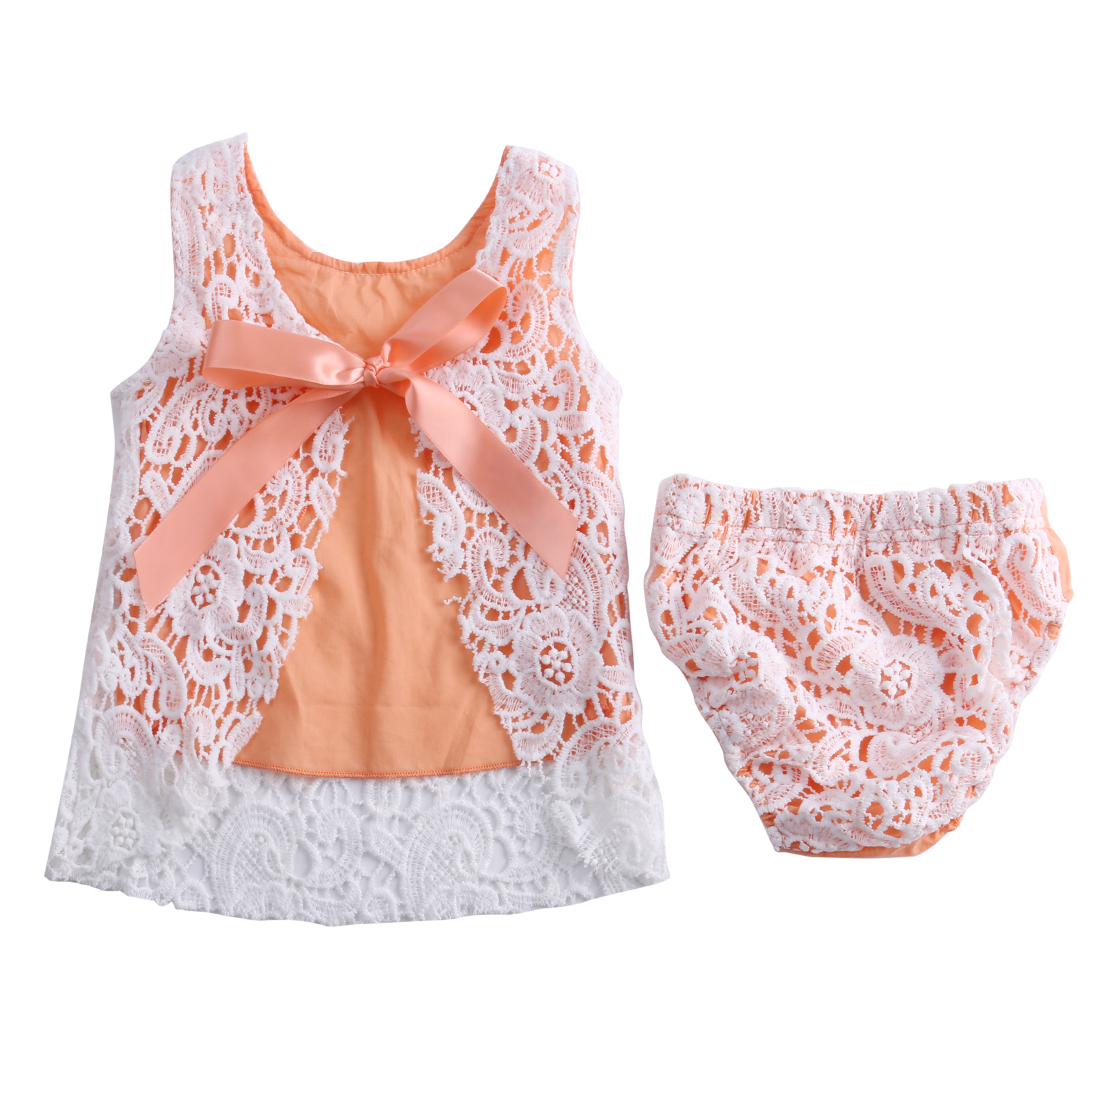 Girl Clothes Summer Set, Girl Clothes Summer Set Suppliers Directory - Find variety Girl Clothes Summer Set Suppliers, Manufacturers, Companies from around the World at baby clothes sets,baby girl clothes,girls clothes, Casual Dresses.